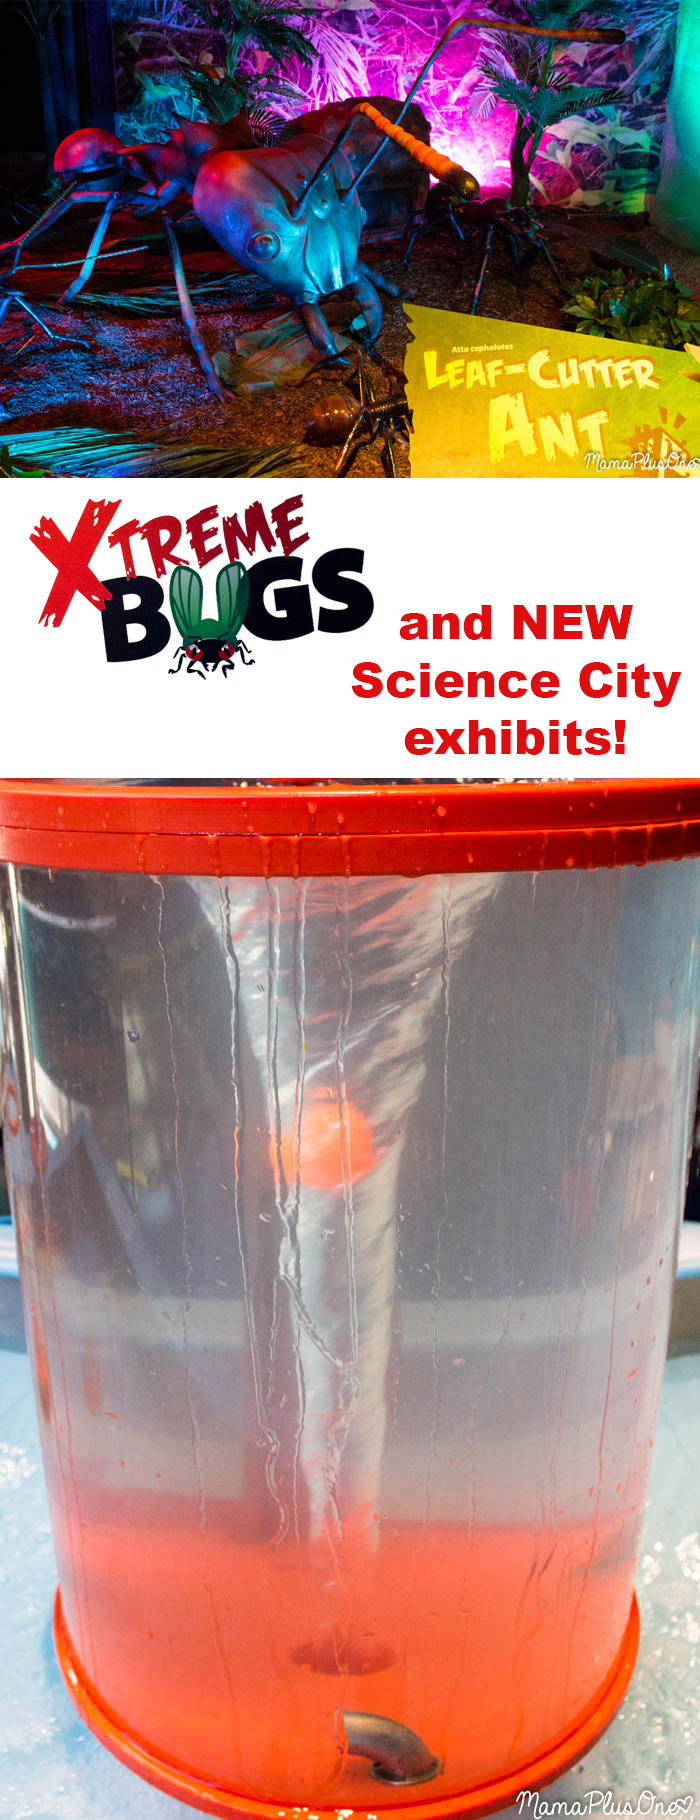 If you're in the Kansas City area (or even if you aren't), you don't want to miss these exhibits. XTreme Bugs runs through April, and the new Science City exhibits are great permanent additions to the facility! Read what's new, then stop by and visit.